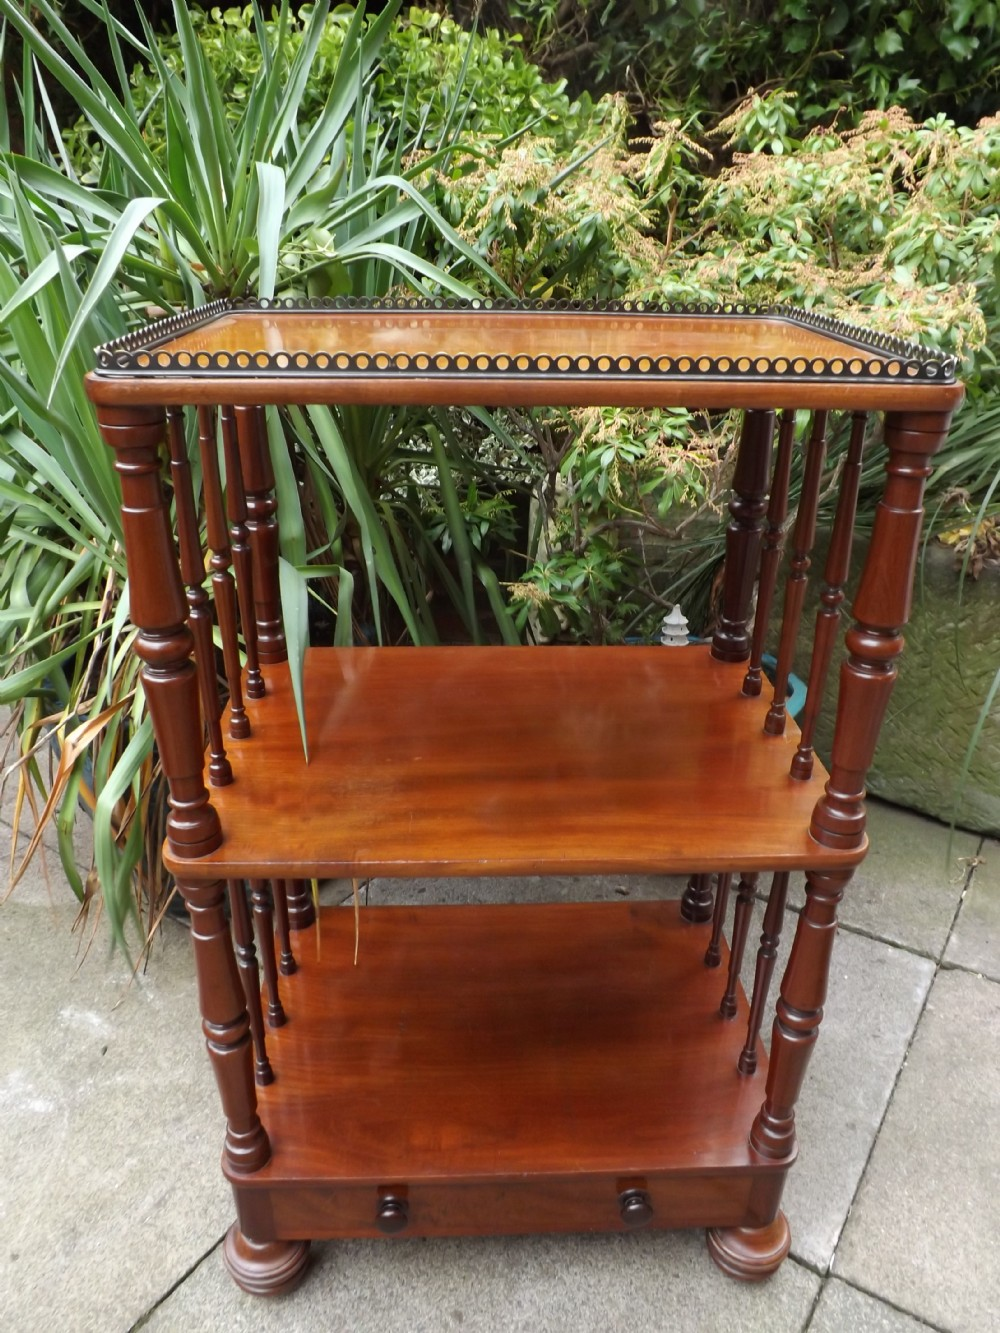 c19th mahogany tagre'whatnot' with gallery top